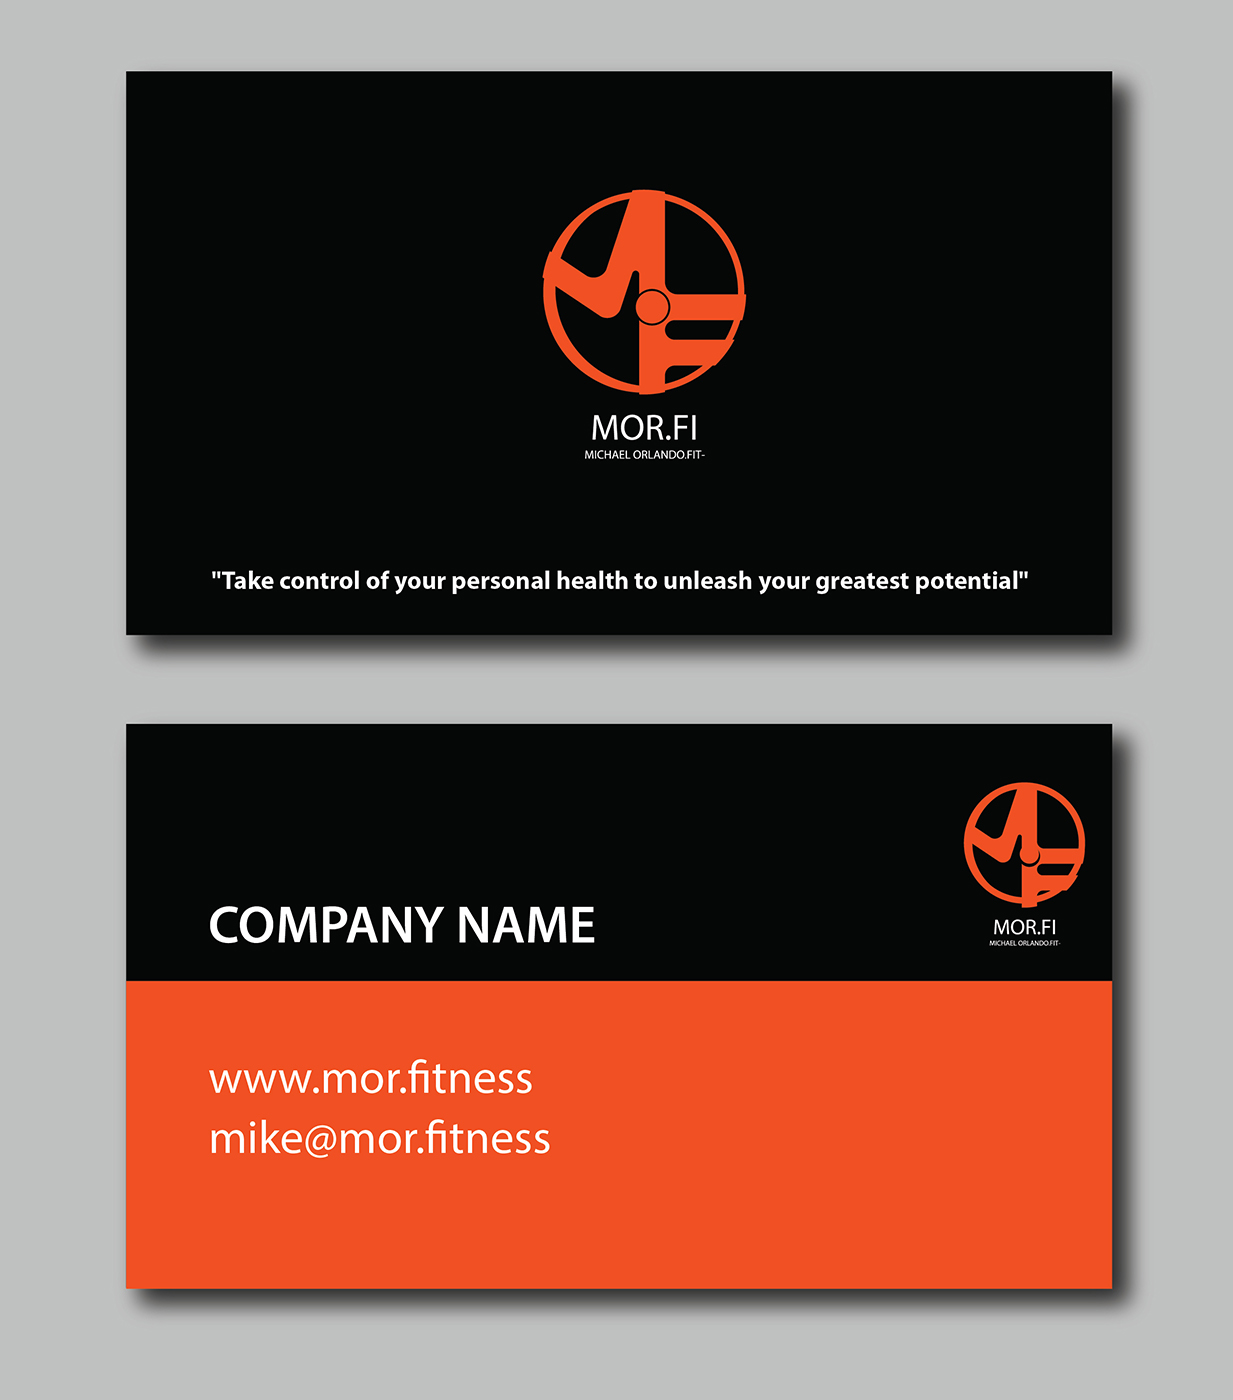 141993 16727409 3007357 c88d47a0 image Top Result 20 New Business Cards orlando Photography 2017 Zat3